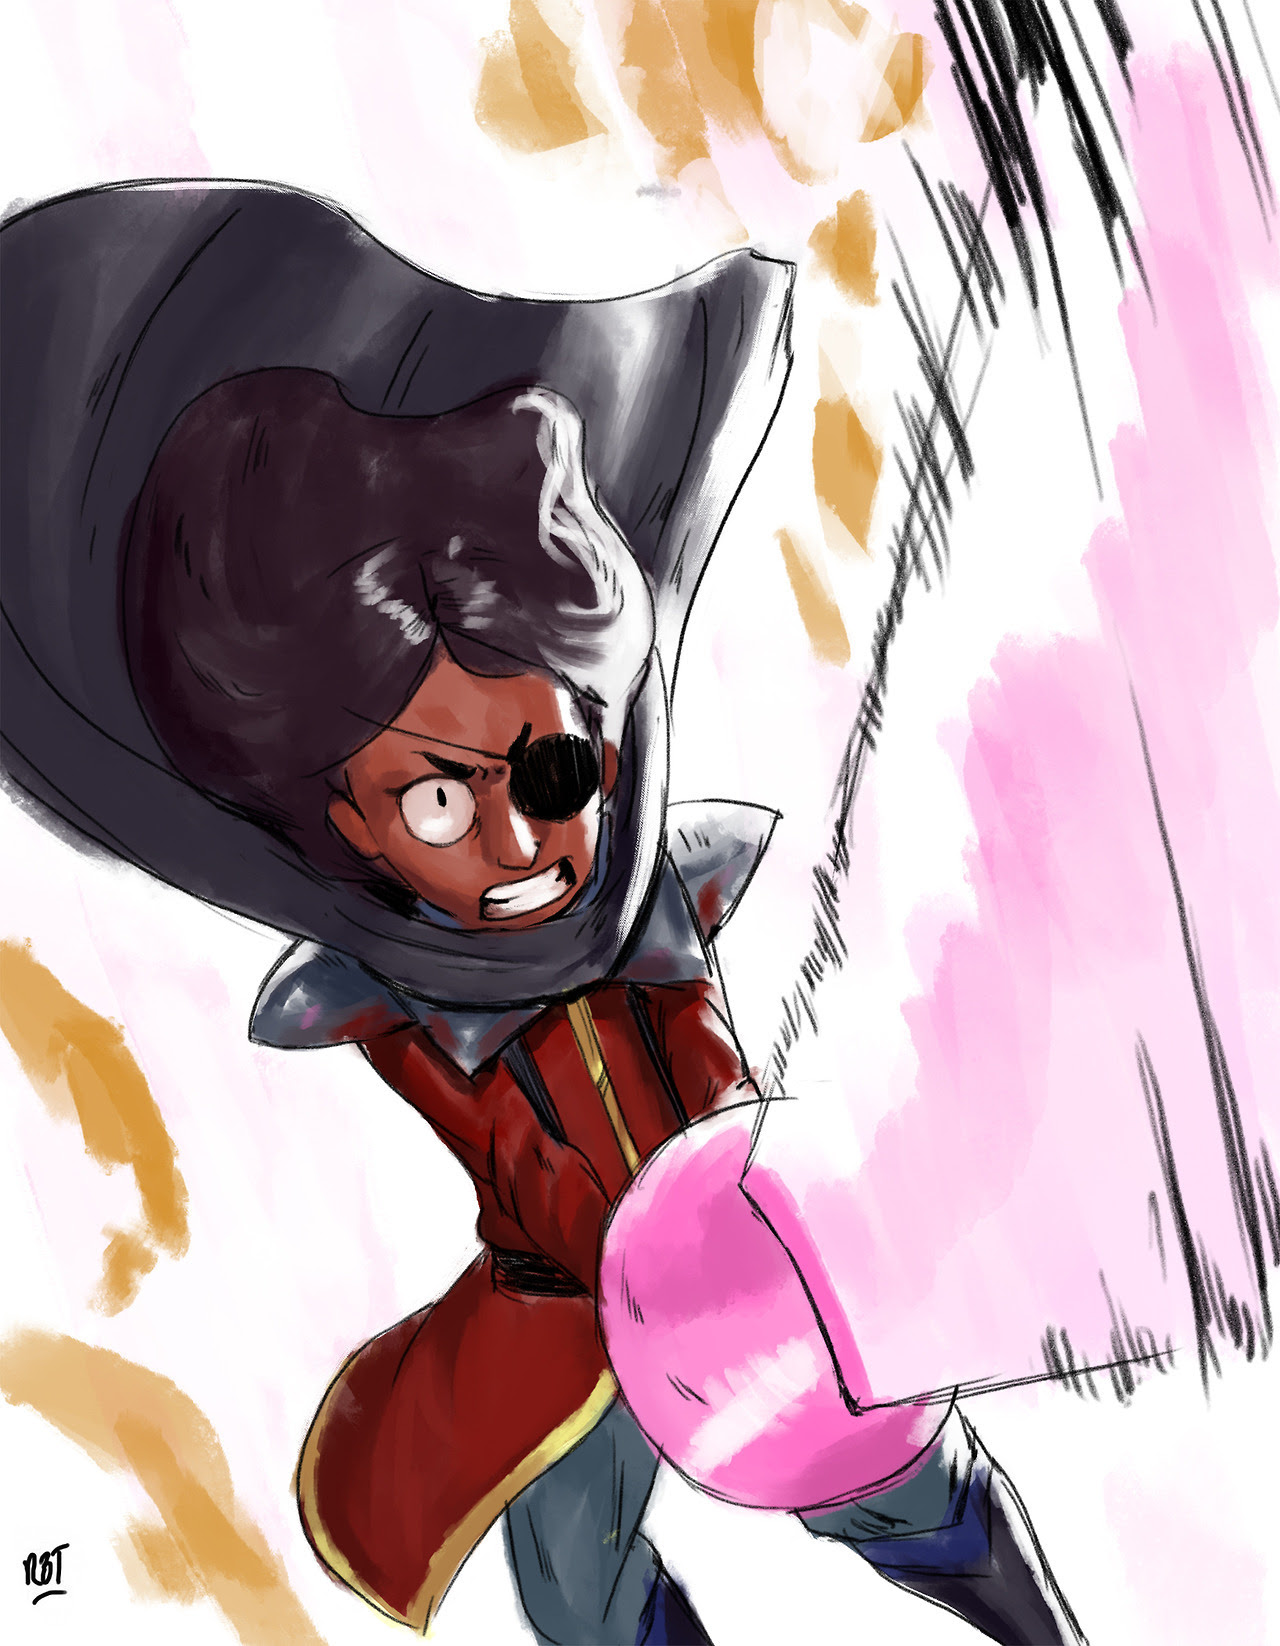 connie (w/ zengar outfit) dood